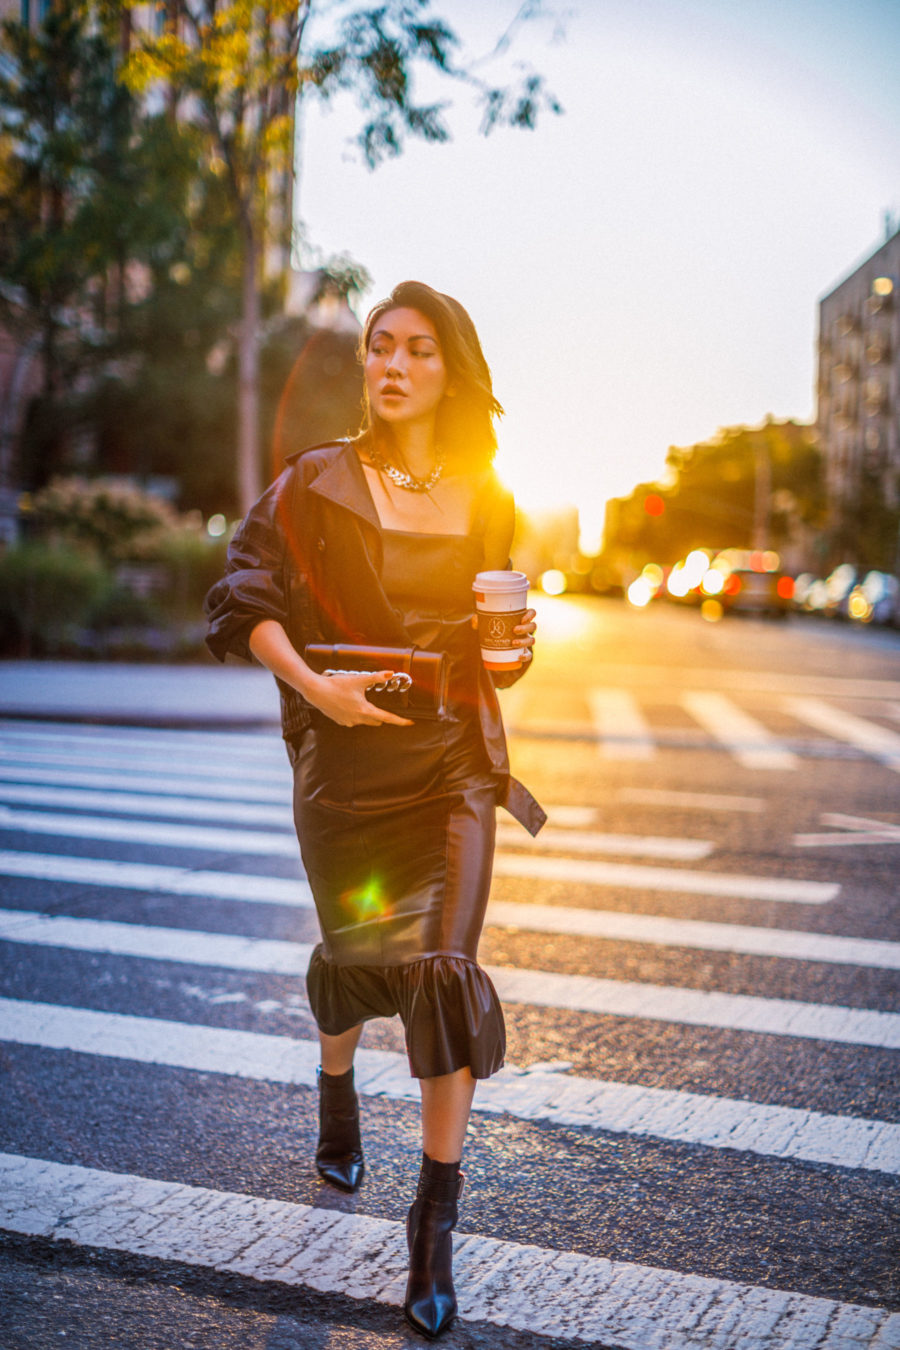 handbag trends for fall 2019, givenchy chain clutch, leather outfit, brown leather jacket, leather dress, fall 2018 outfit inspiration // Notjessfashion.com